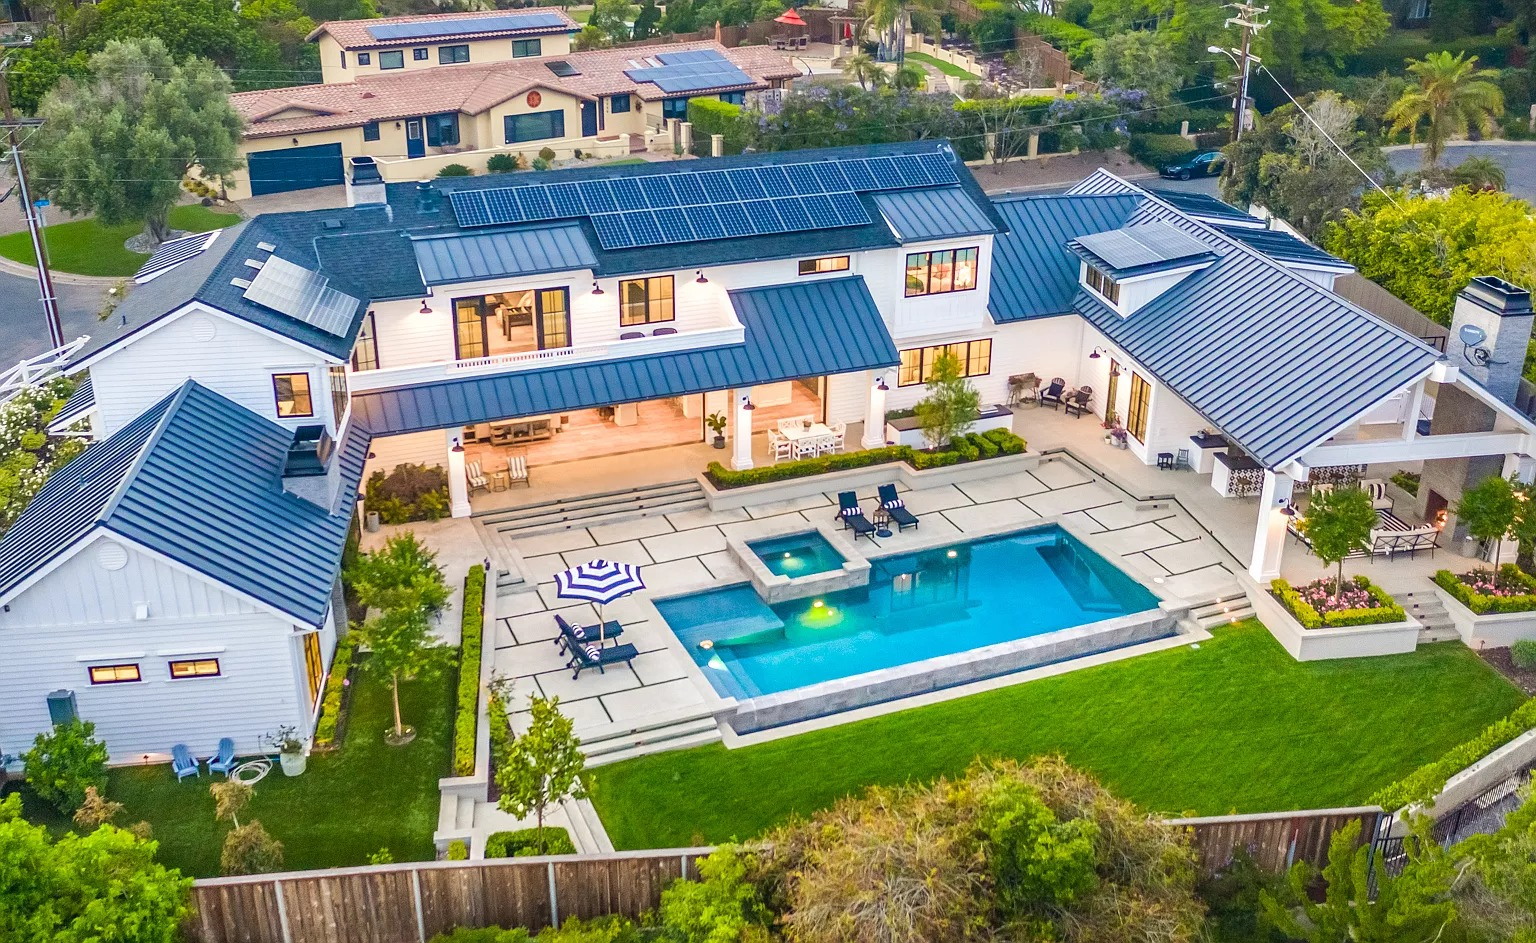 2003 Olite Ct, La Jolla, CA 92037 - $6,799,000 home for sale, house images, photos and pics gallery